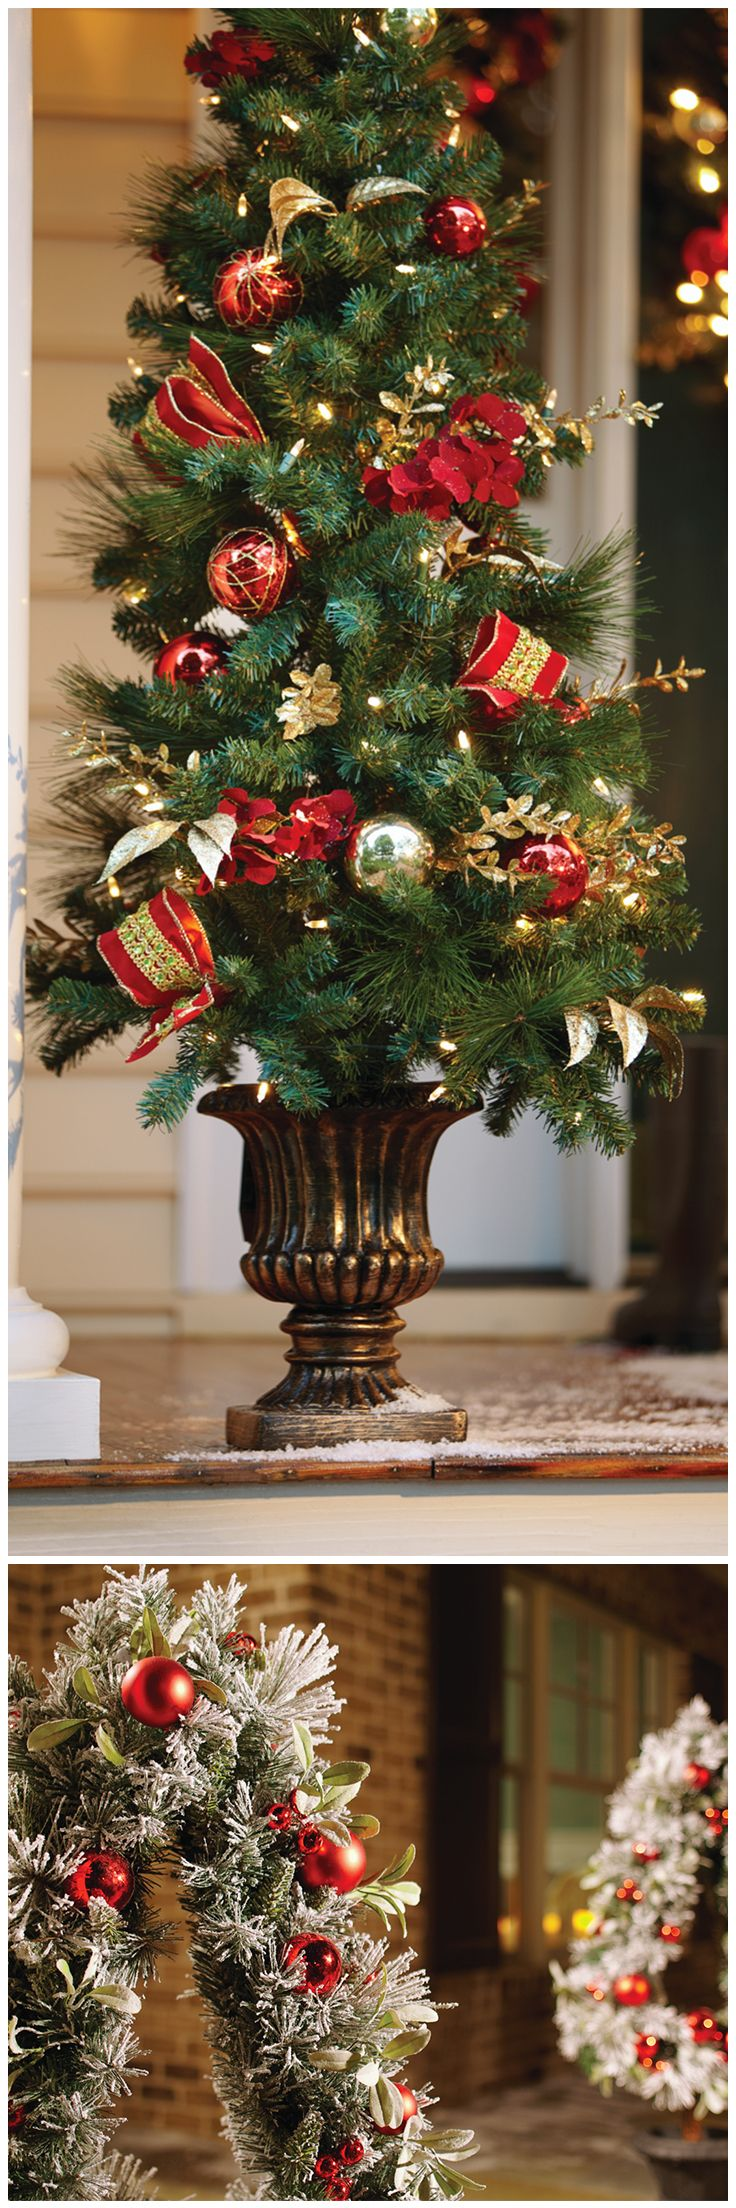 Home gt artificial florals gt holidays gt 60 quot poinsettia amp berry garland - Brighten Up Your Home S Curb Appeal For The Holidays With Beautiful Wreaths Garland And Christmas